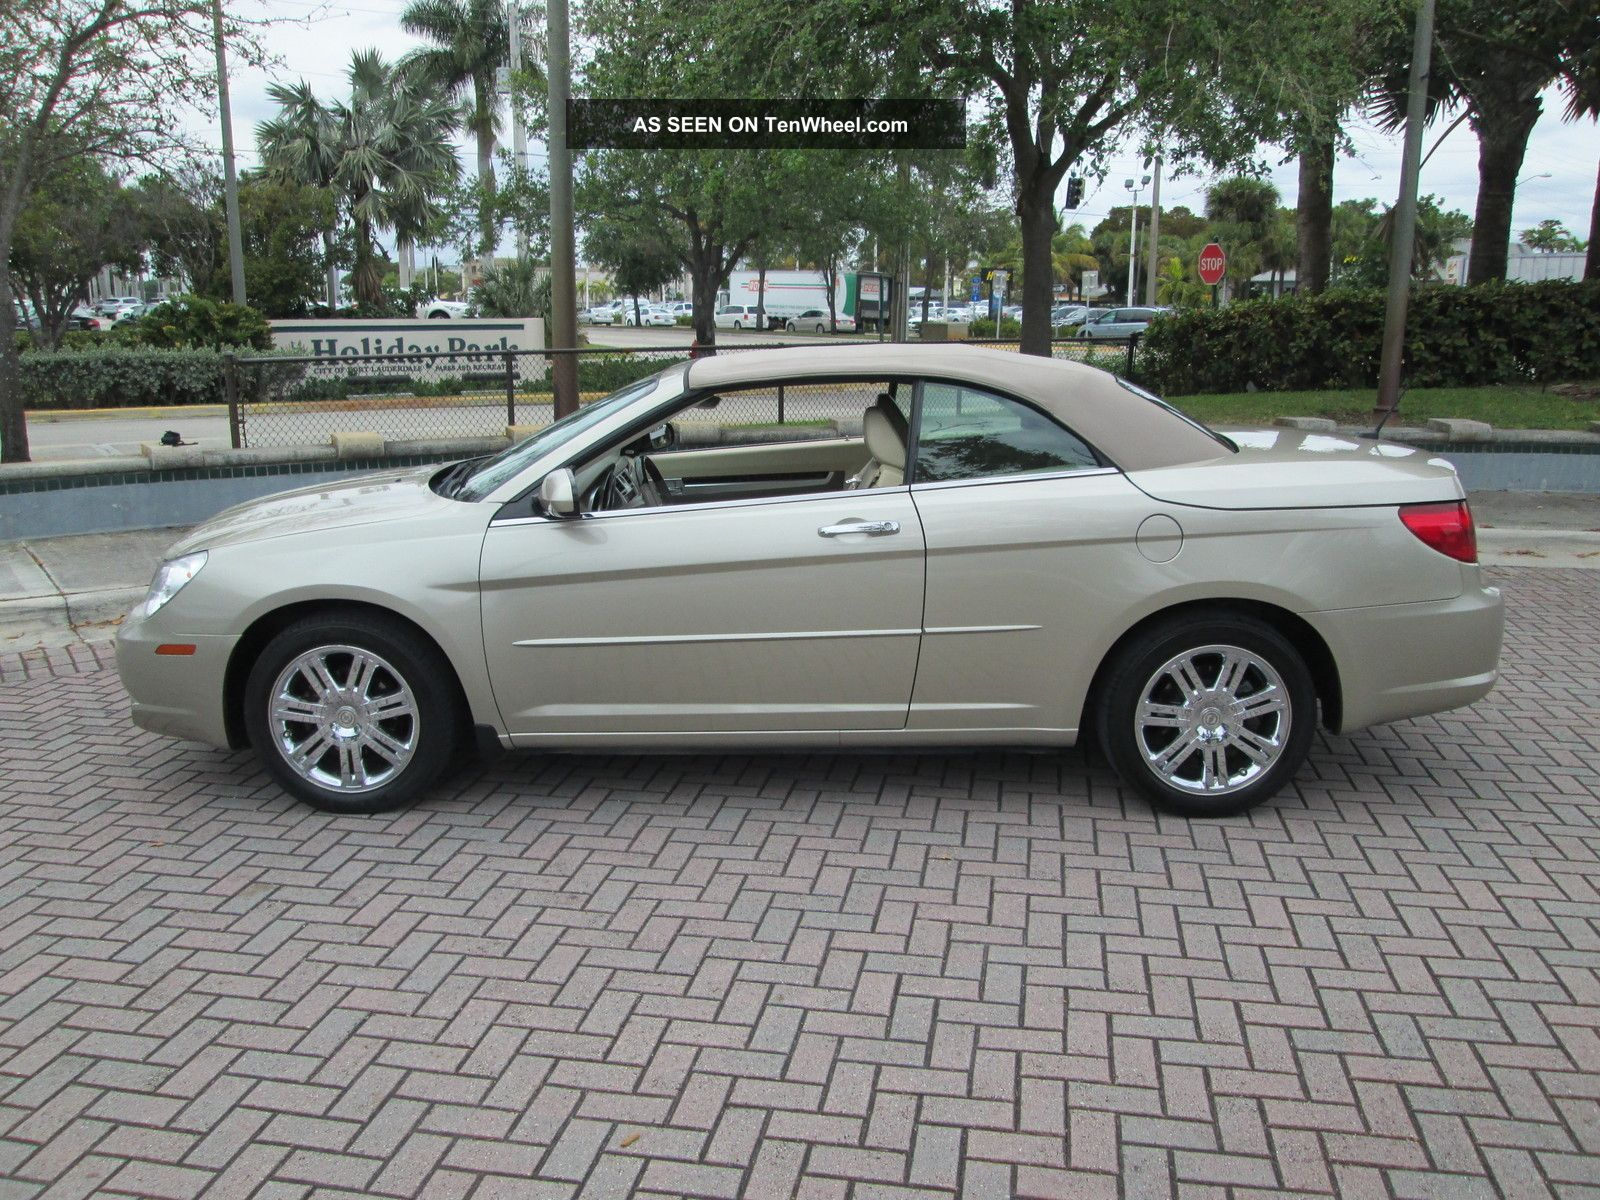 2008 chrysler sebring limited convertible fla car sebring photo 9. Cars Review. Best American Auto & Cars Review